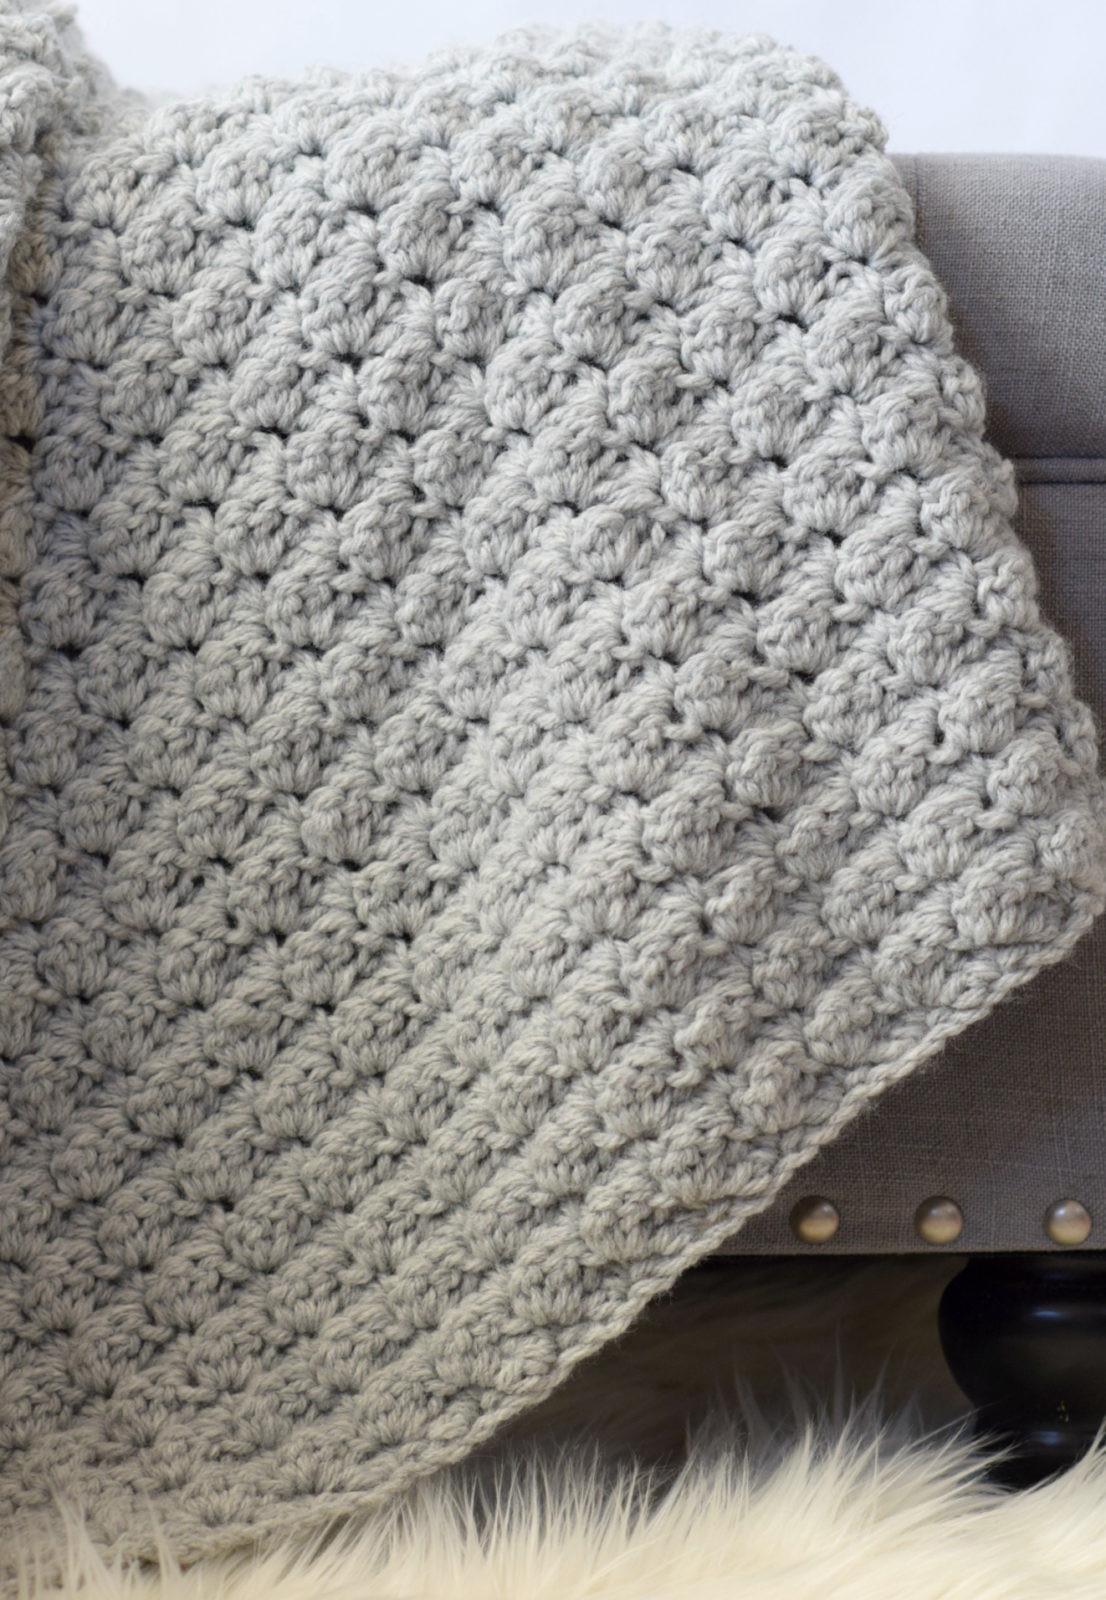 Different Crochet Patterns Luxury Simple Crocheted Blanket Go to Pattern – Mama In A Stitch Of Brilliant 48 Pictures Different Crochet Patterns